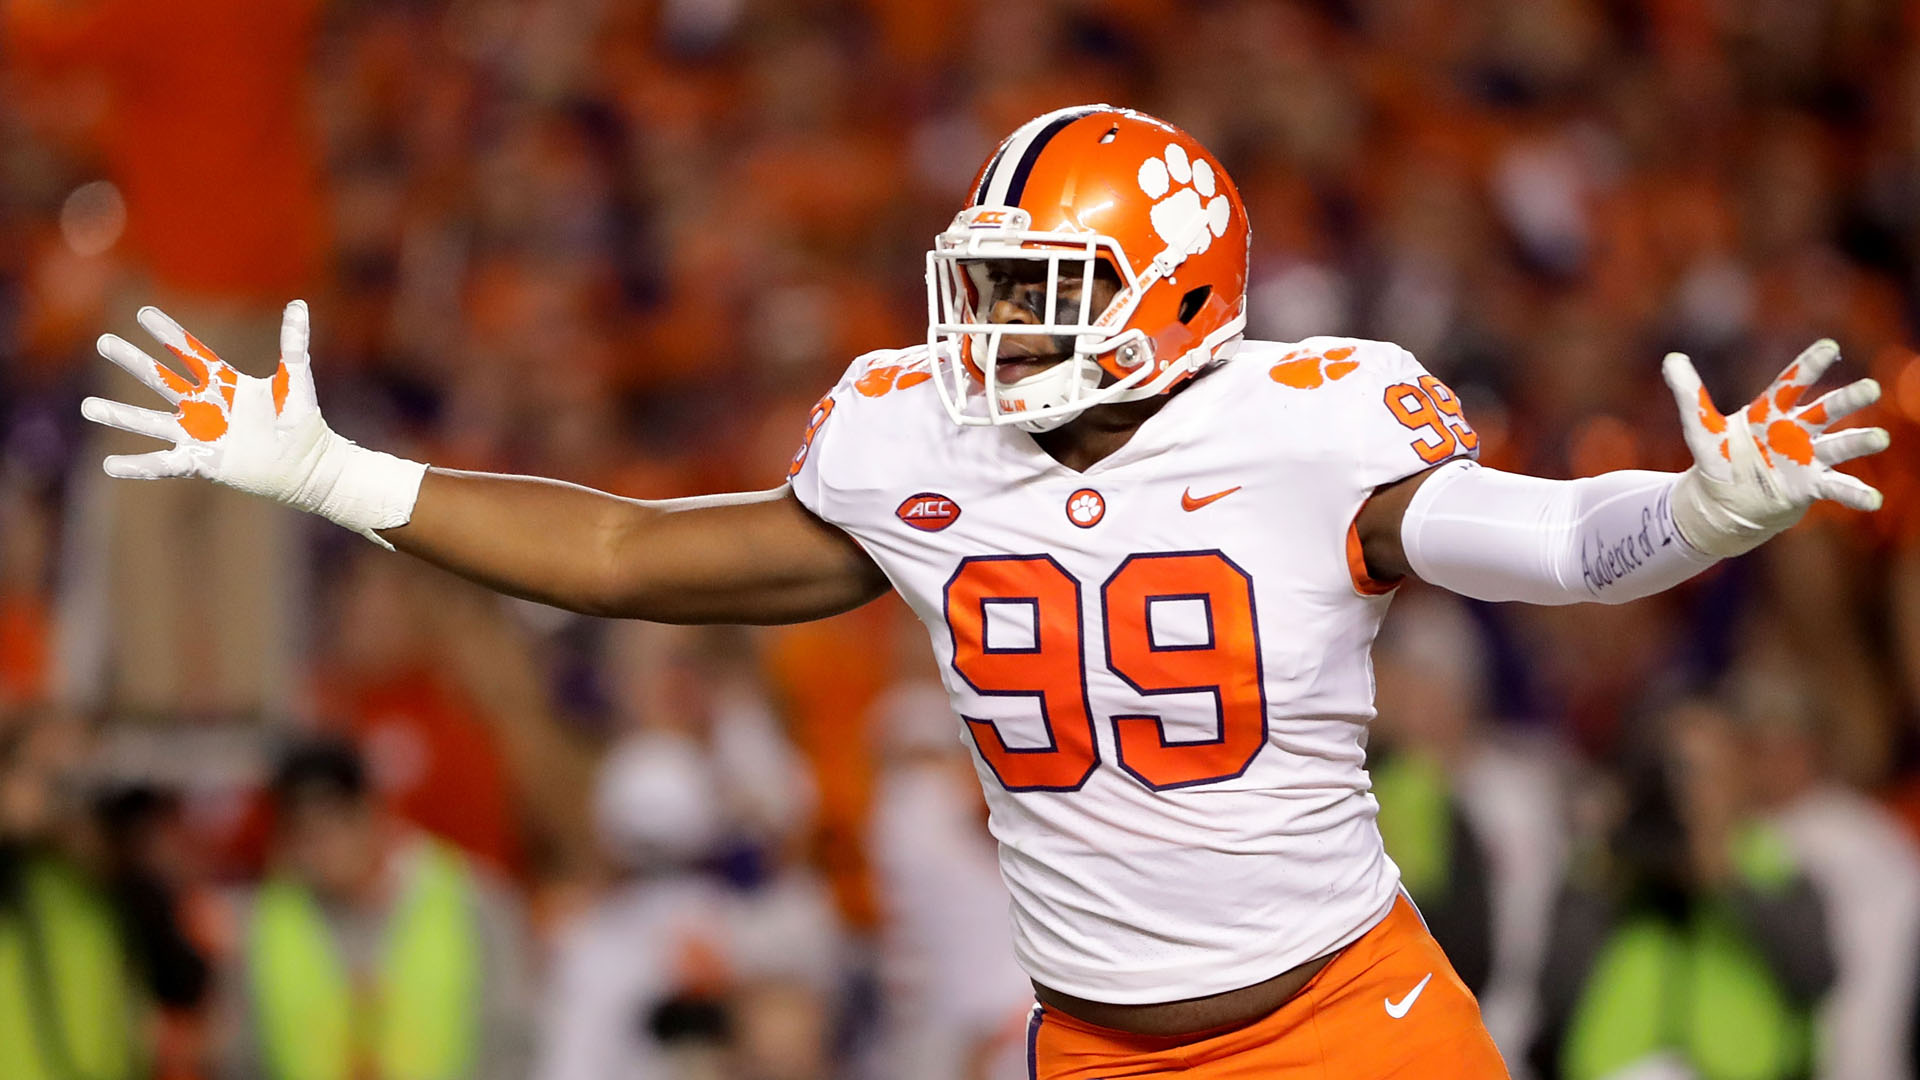 Clemson DT Wilkins returning for senior year